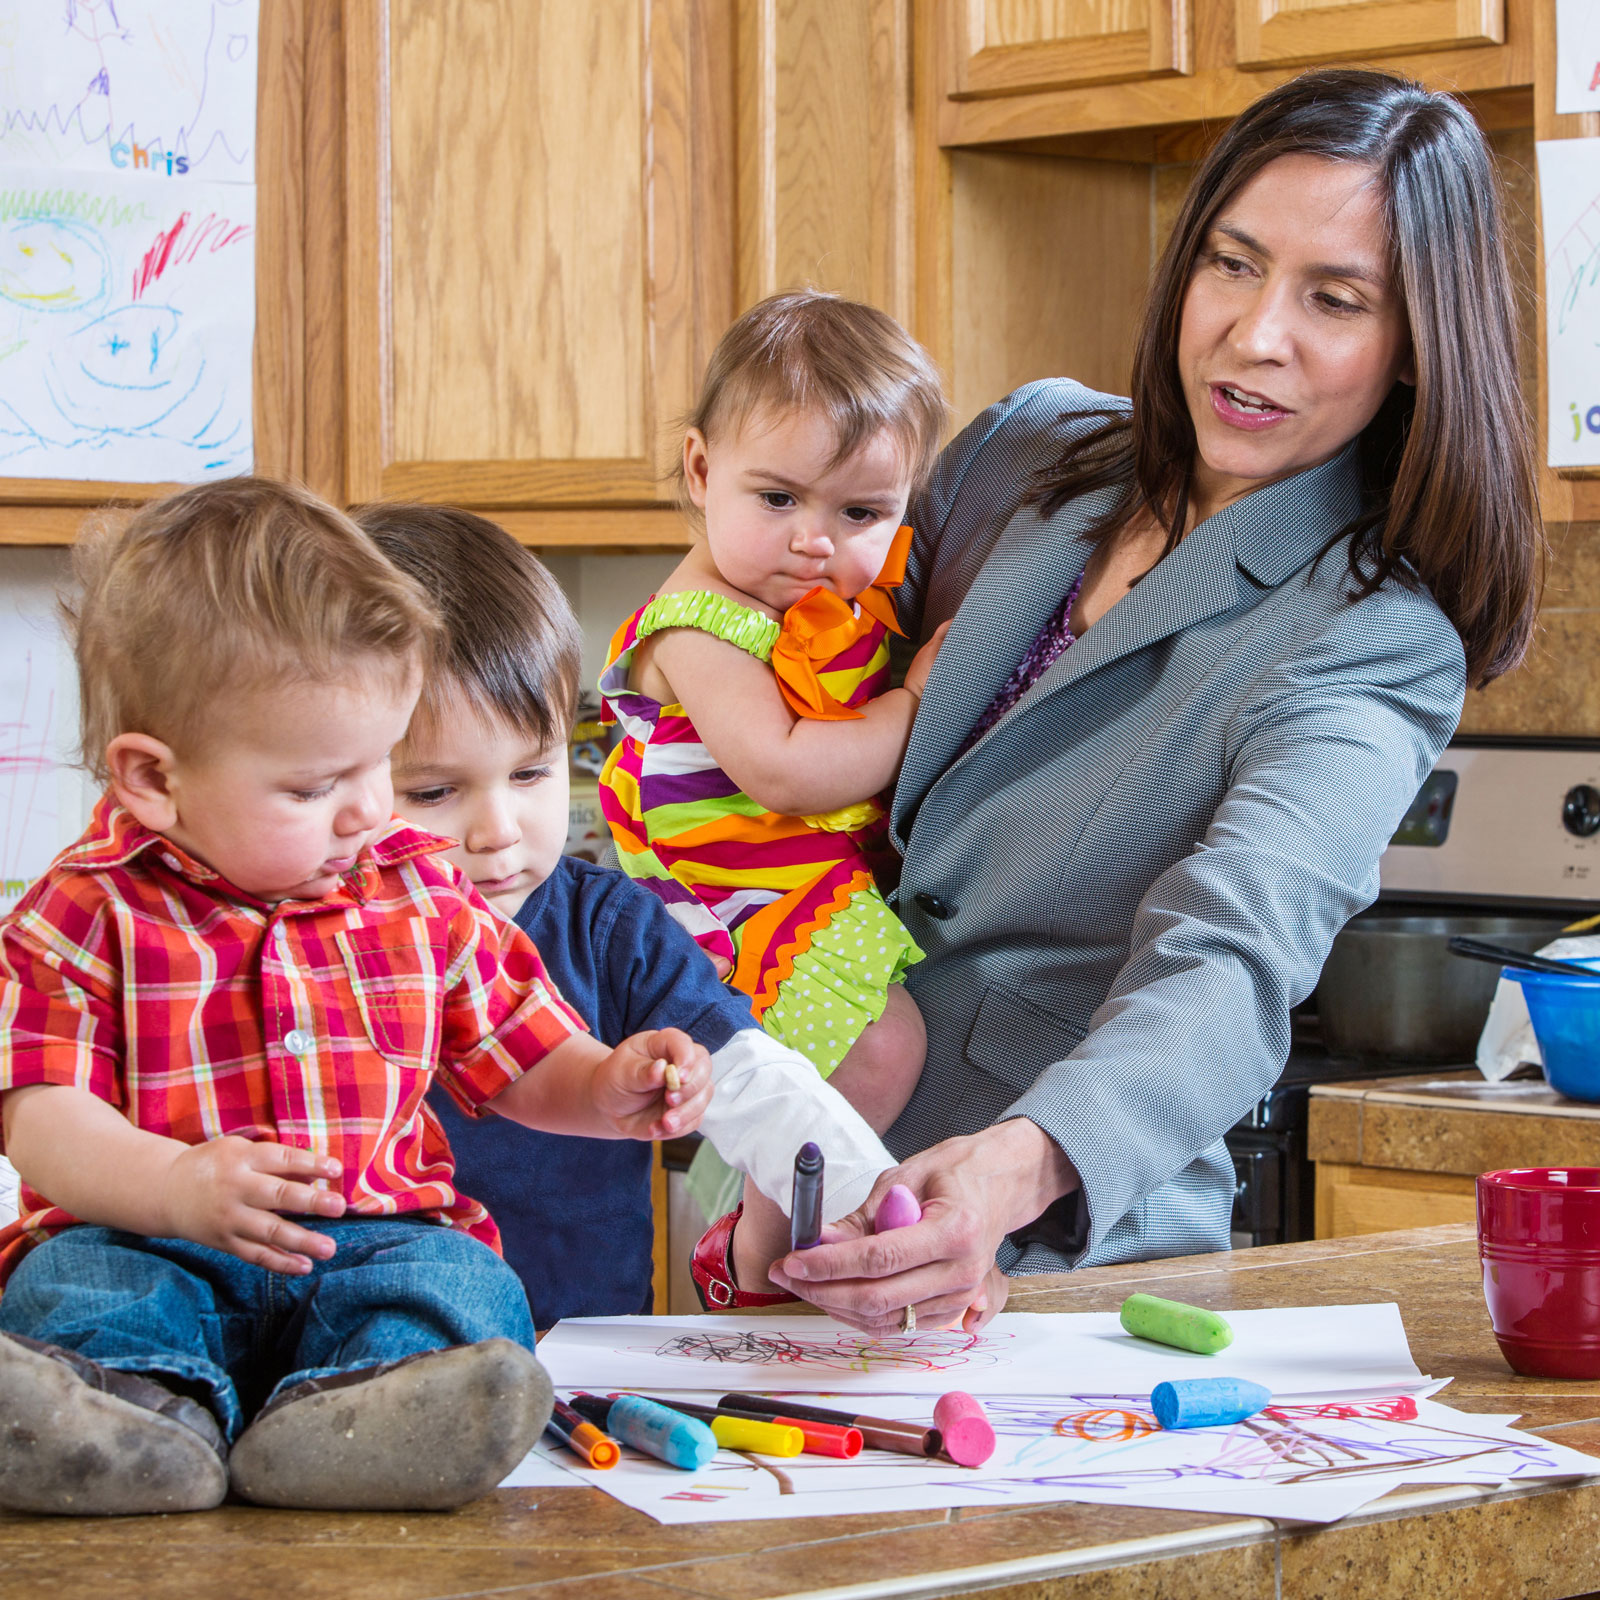 a busy working mom with her three young kids